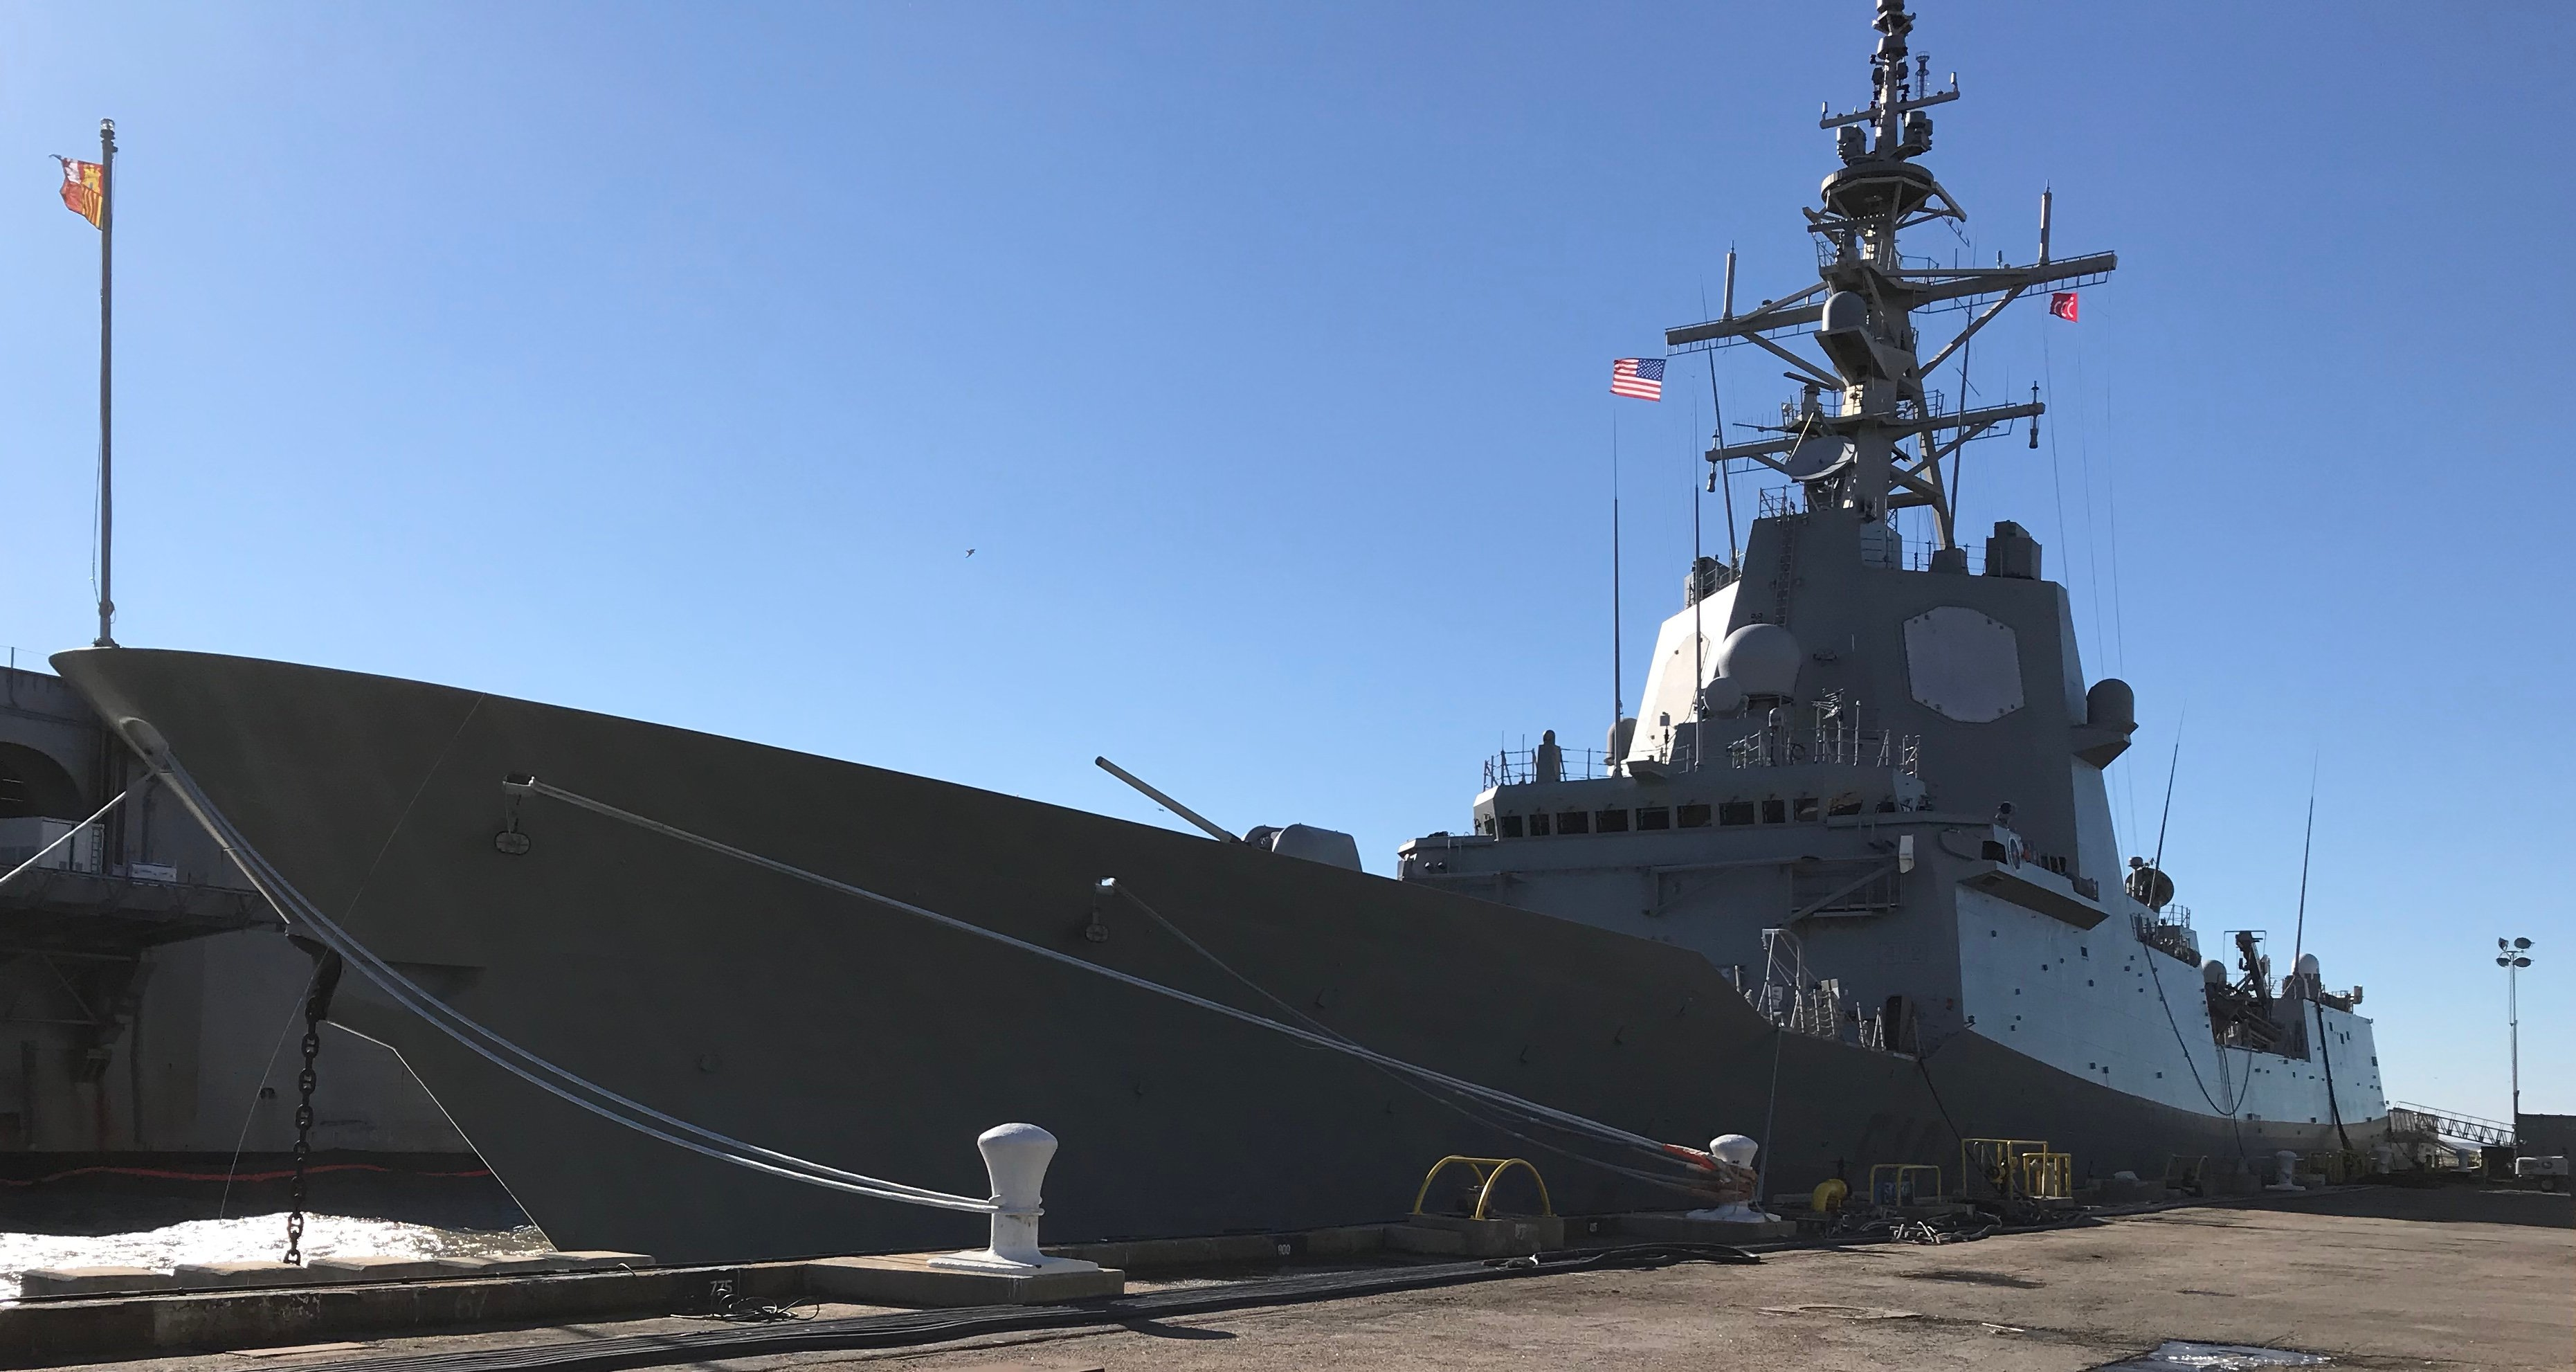 Spanish Shipbuilder Navantia Showcases F-100 Frigate Design